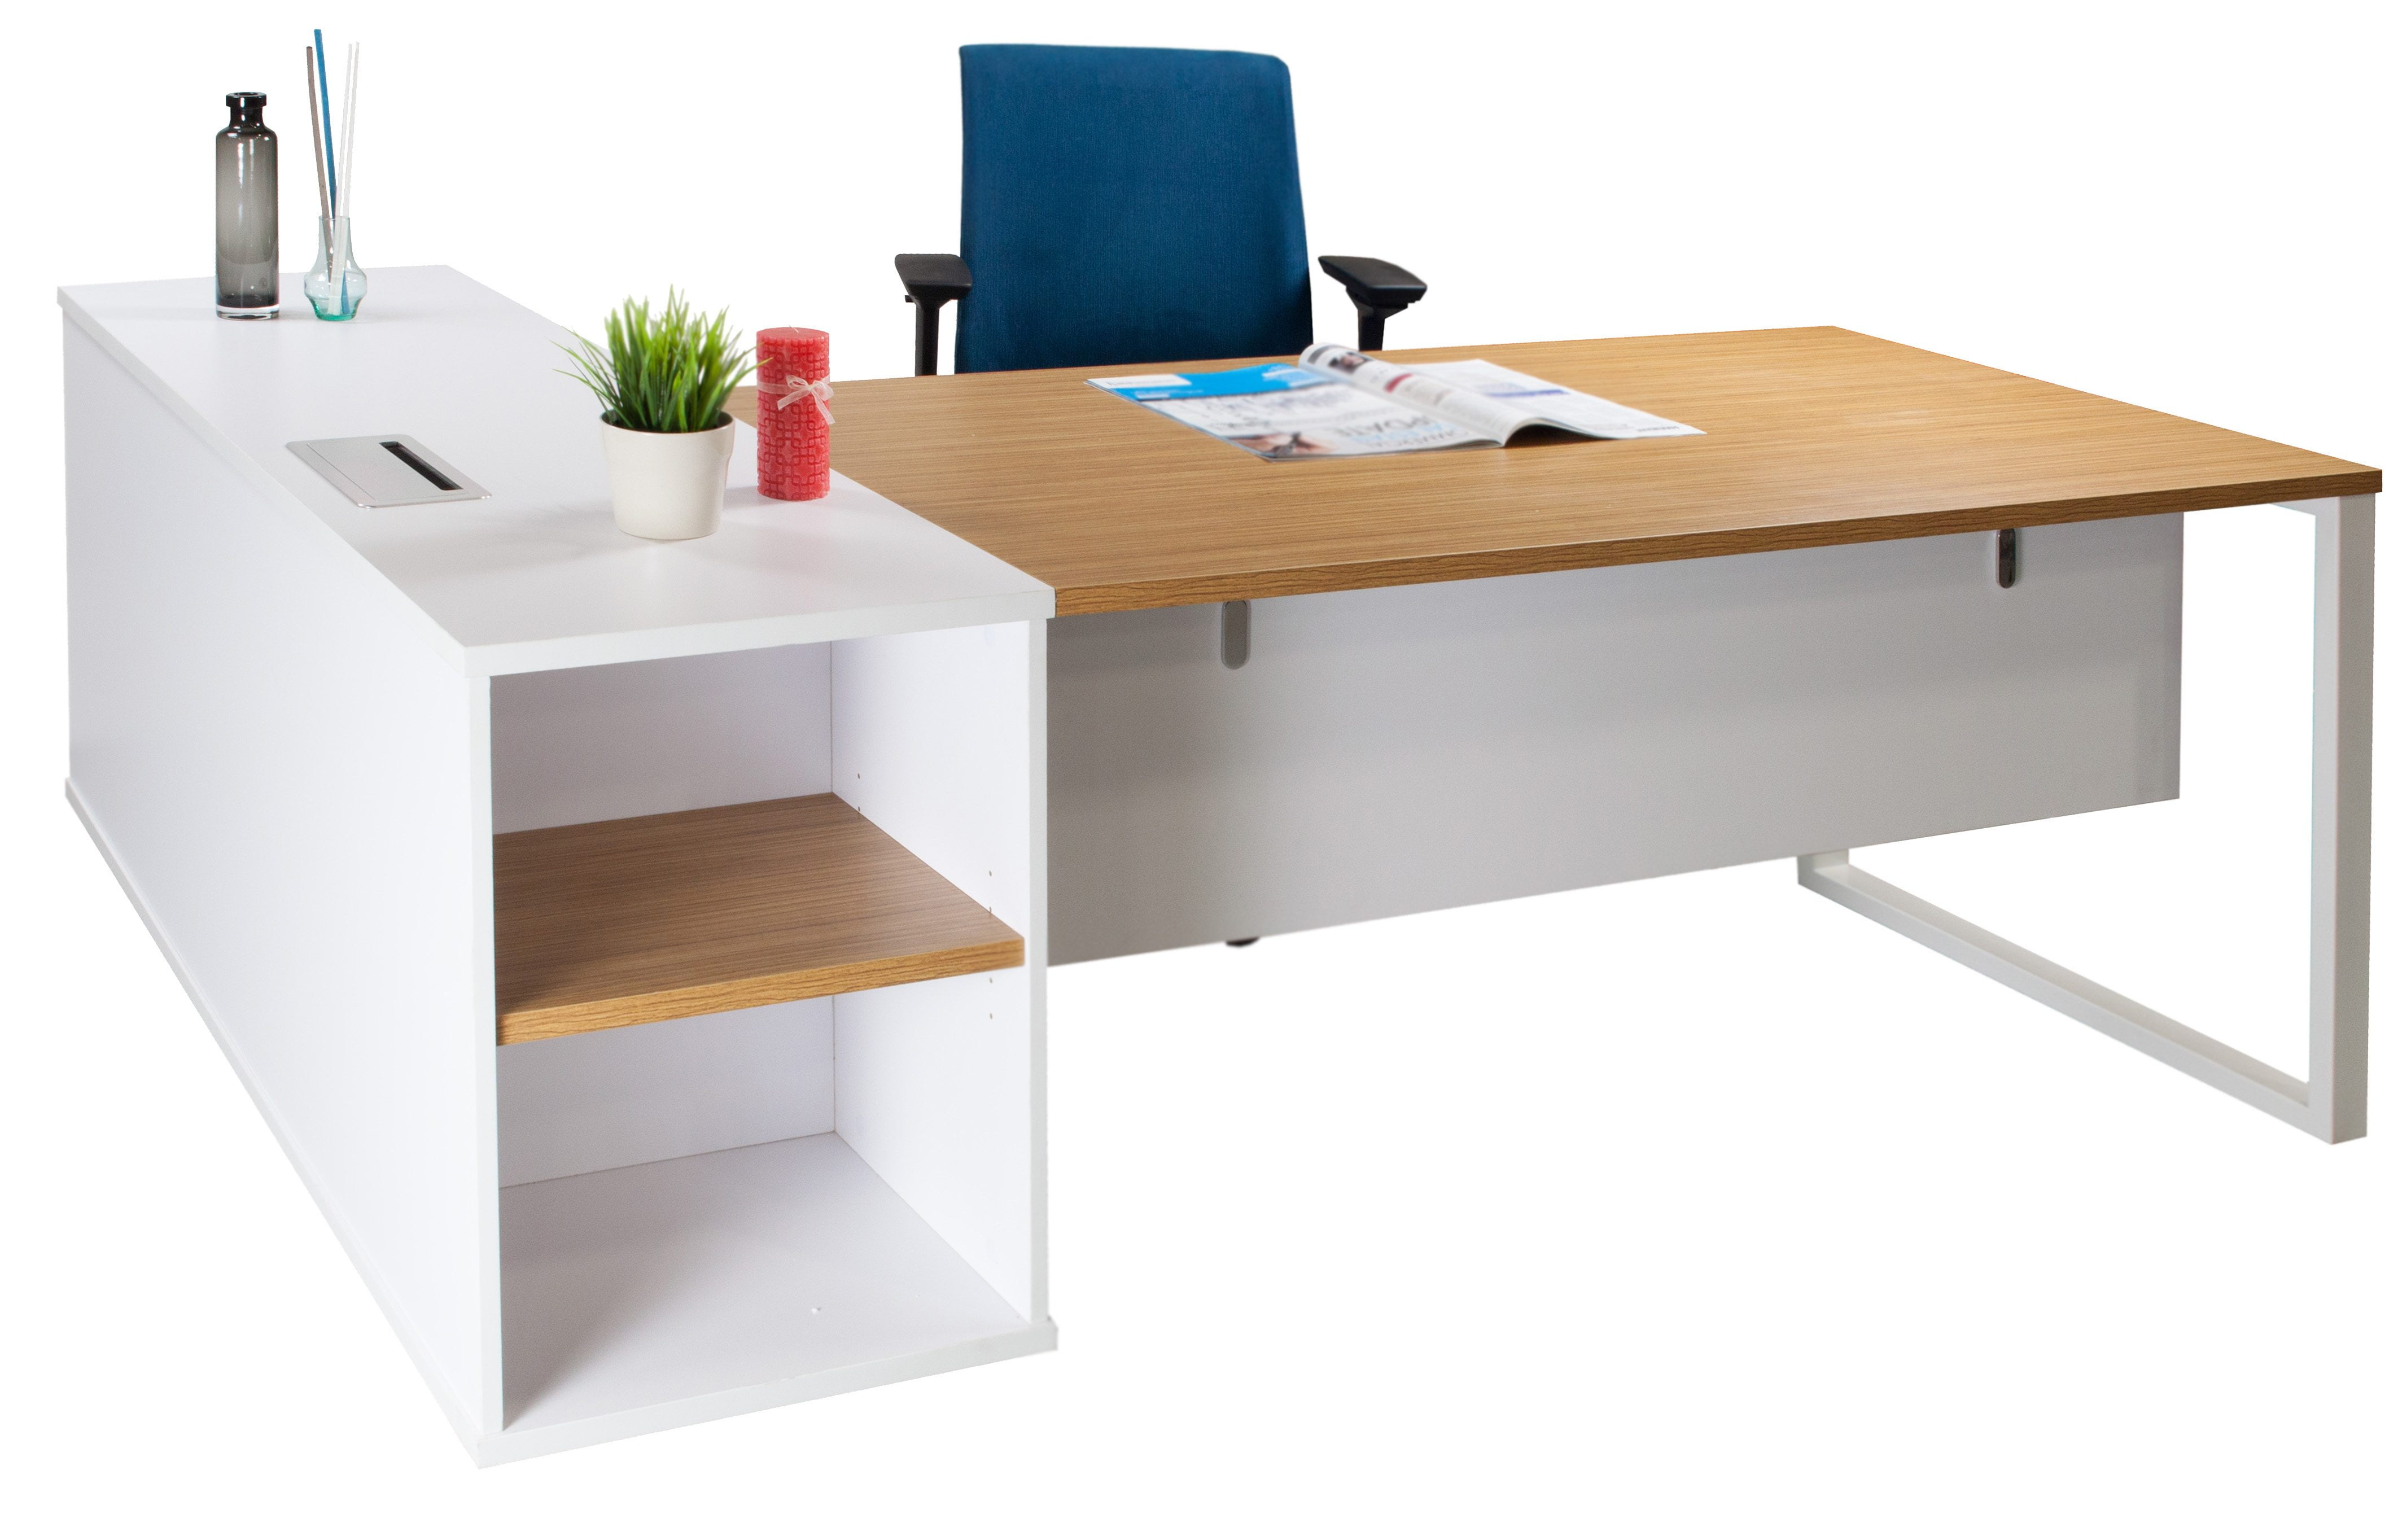 l bestar white pro small concept hutch desk shaped with raw